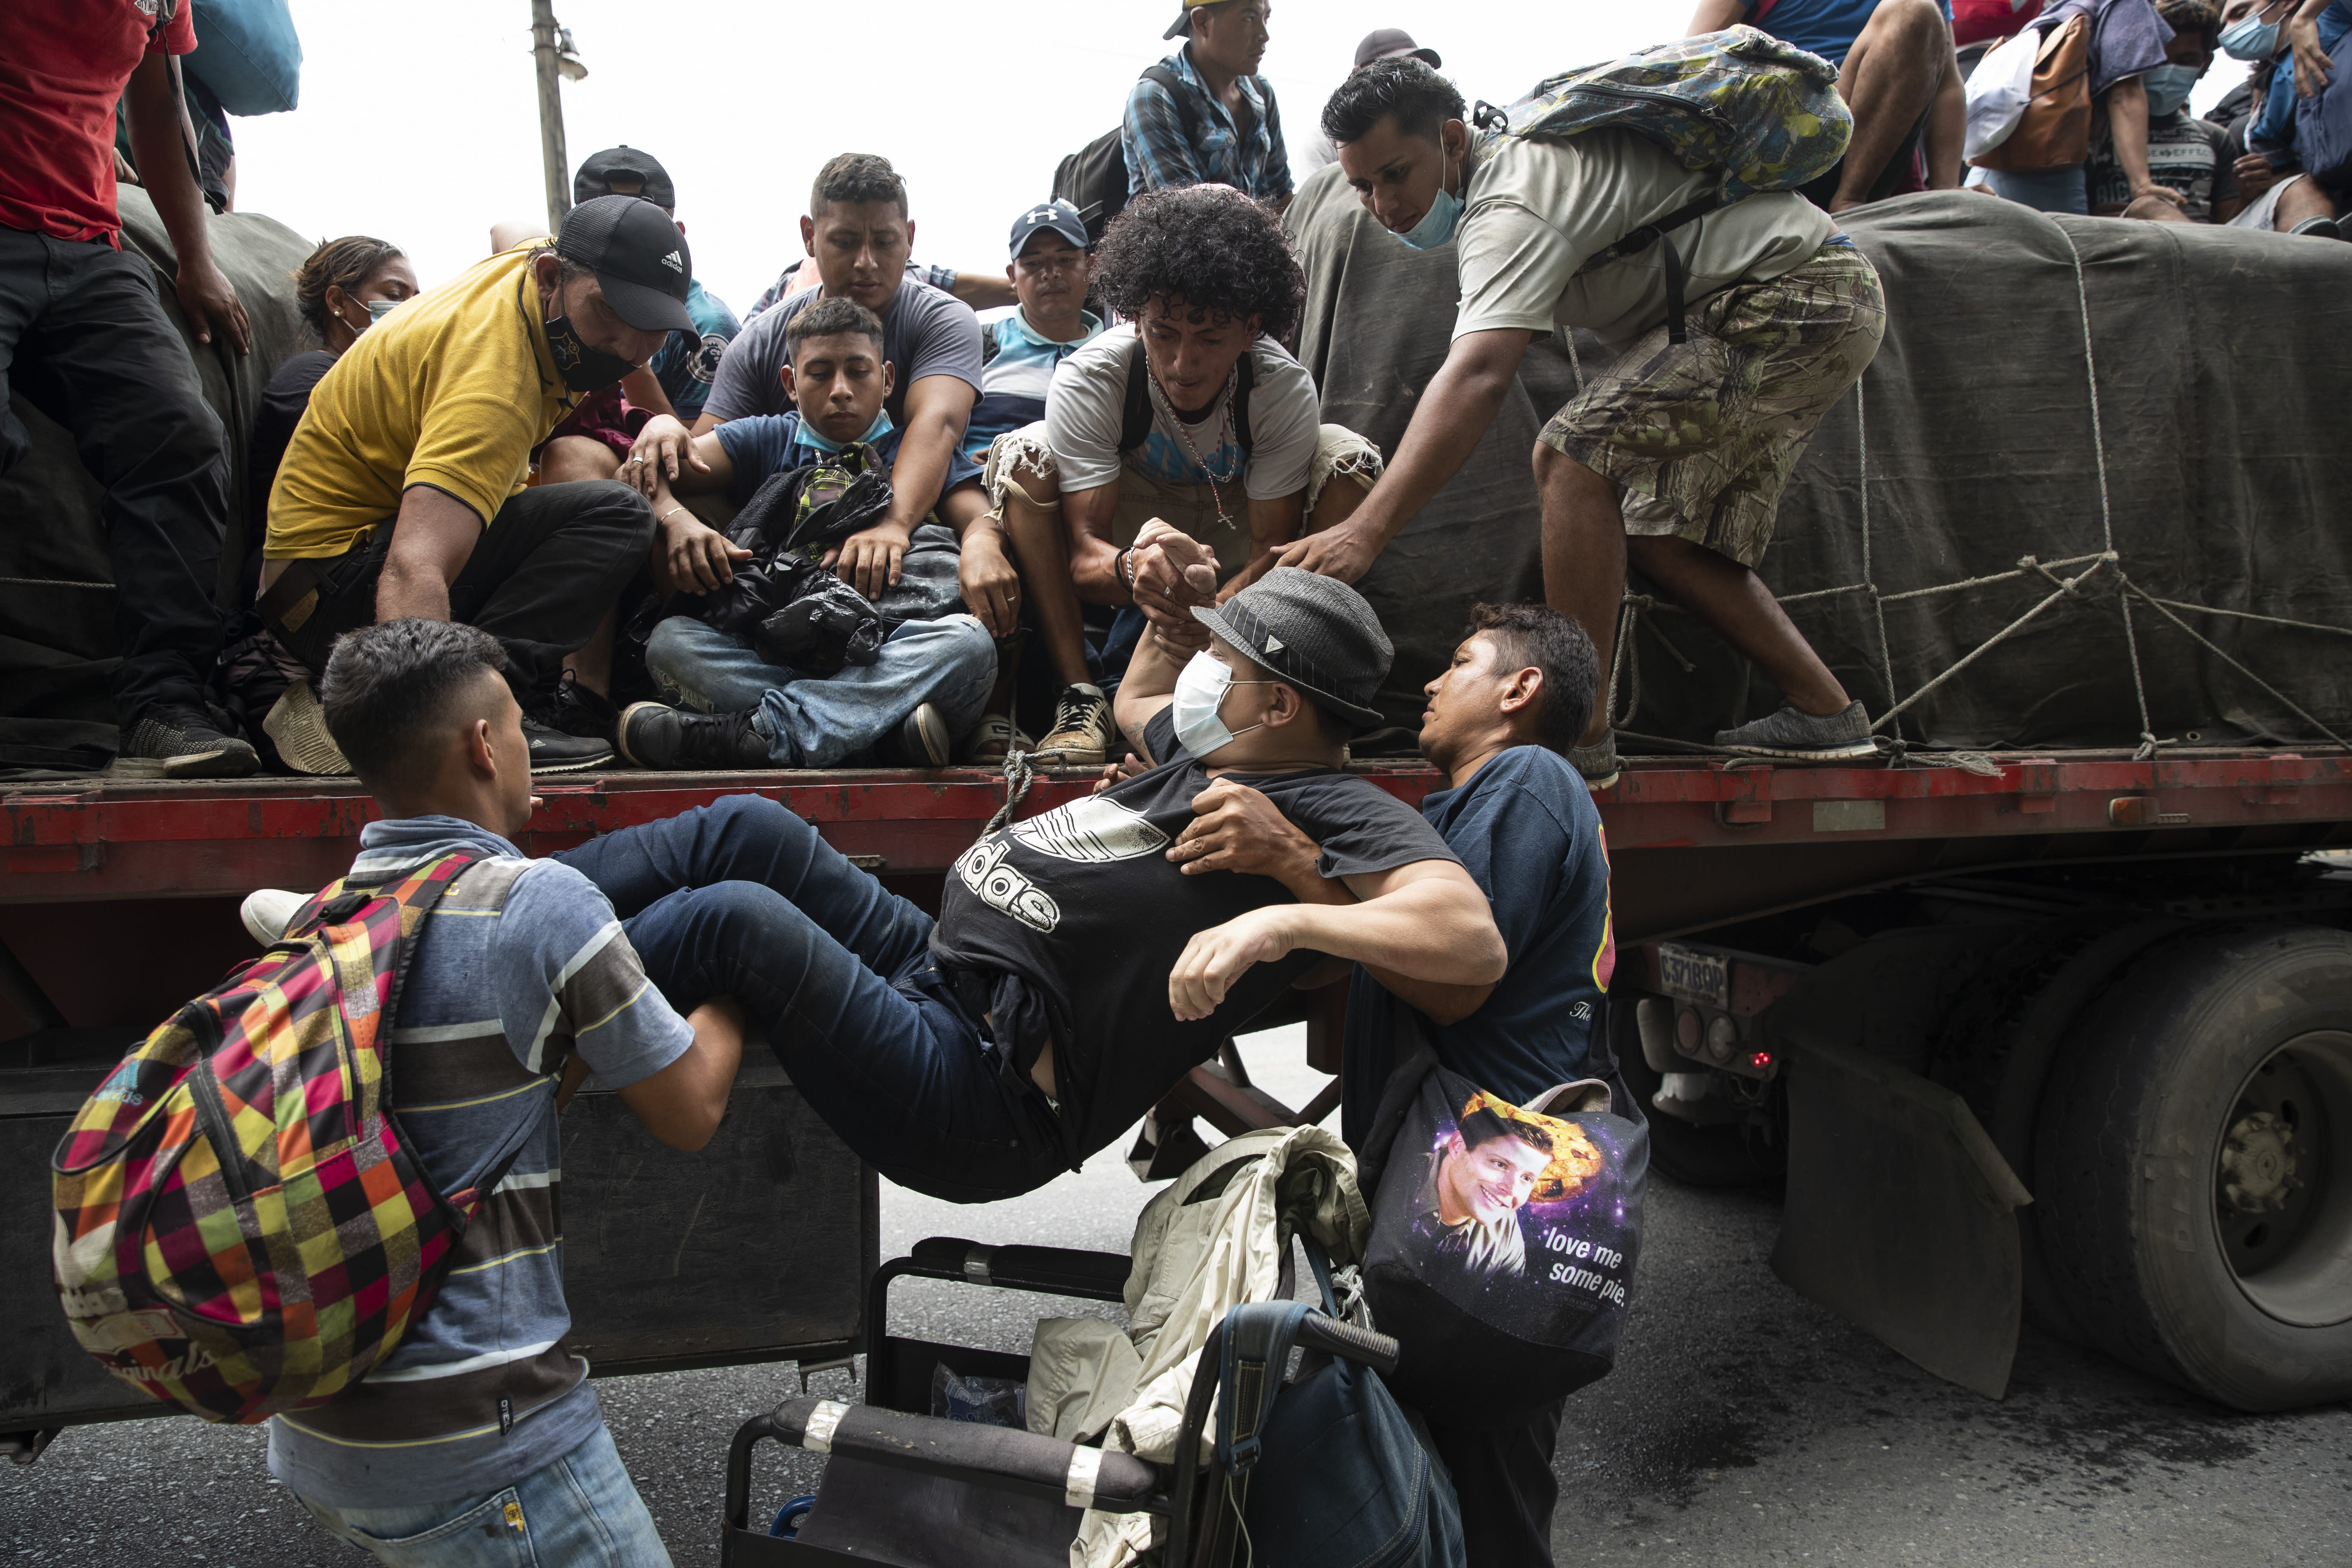 Wheelchair bound migrant Wilmer Chavez, 33, is helped by fellow migrants on to the back of a freight truck that stopped to give the migrants a free ride in Rio Dulce, Guatemala, Friday, Oct. 2, 2020. A new caravan of about 2,000 migrants set out from neighboring Honduras in hopes of reaching the United States. (AP Photo/Moises Castillo)